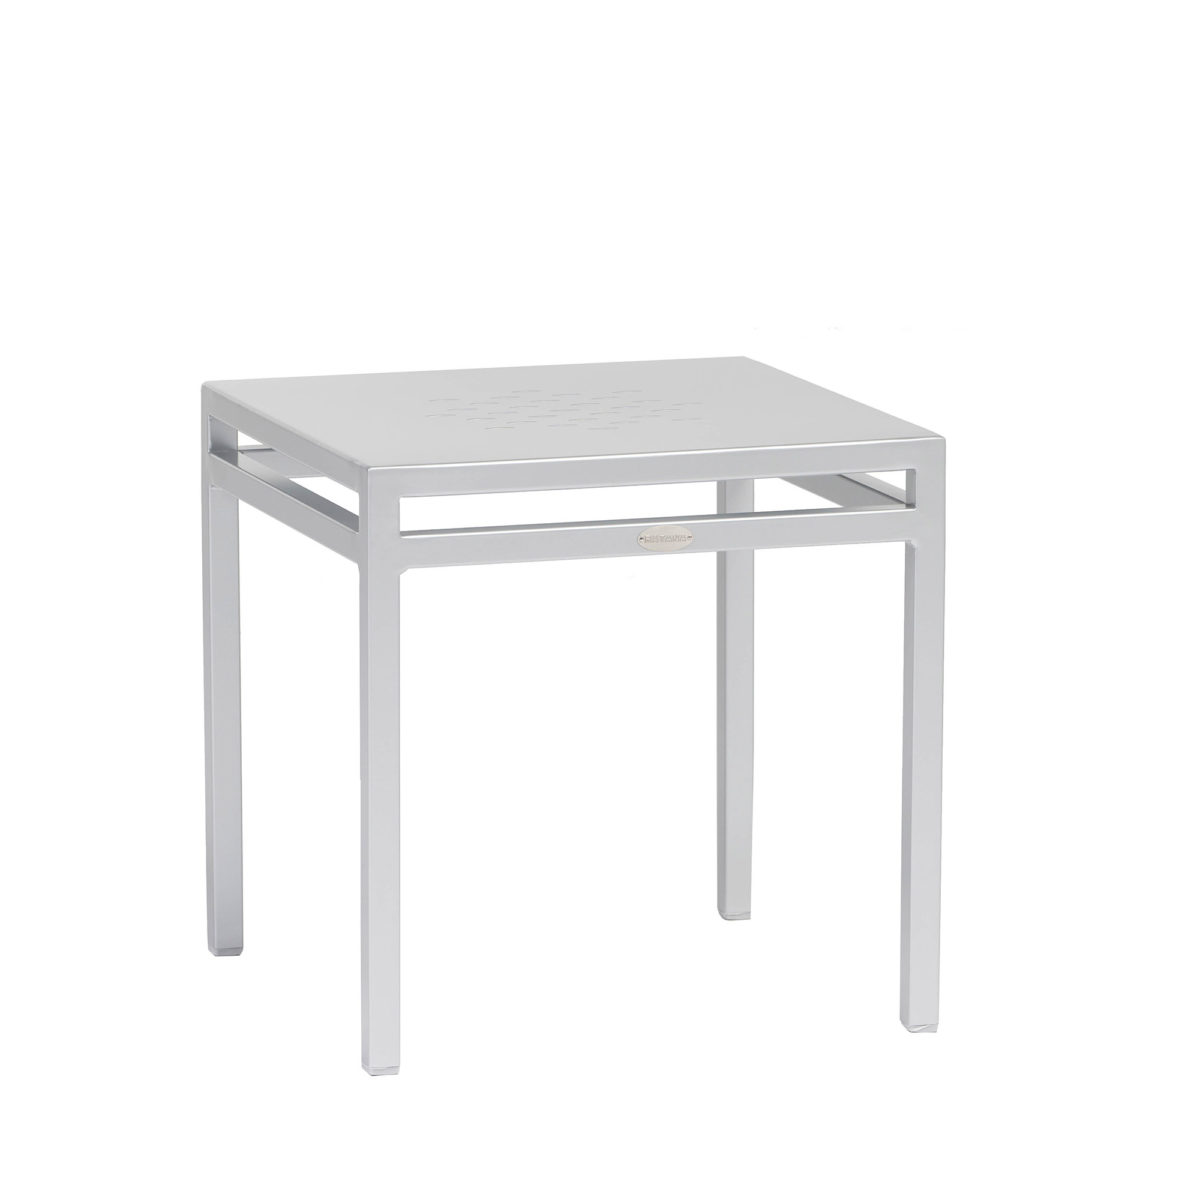 The Toscana lounger side table in grey.